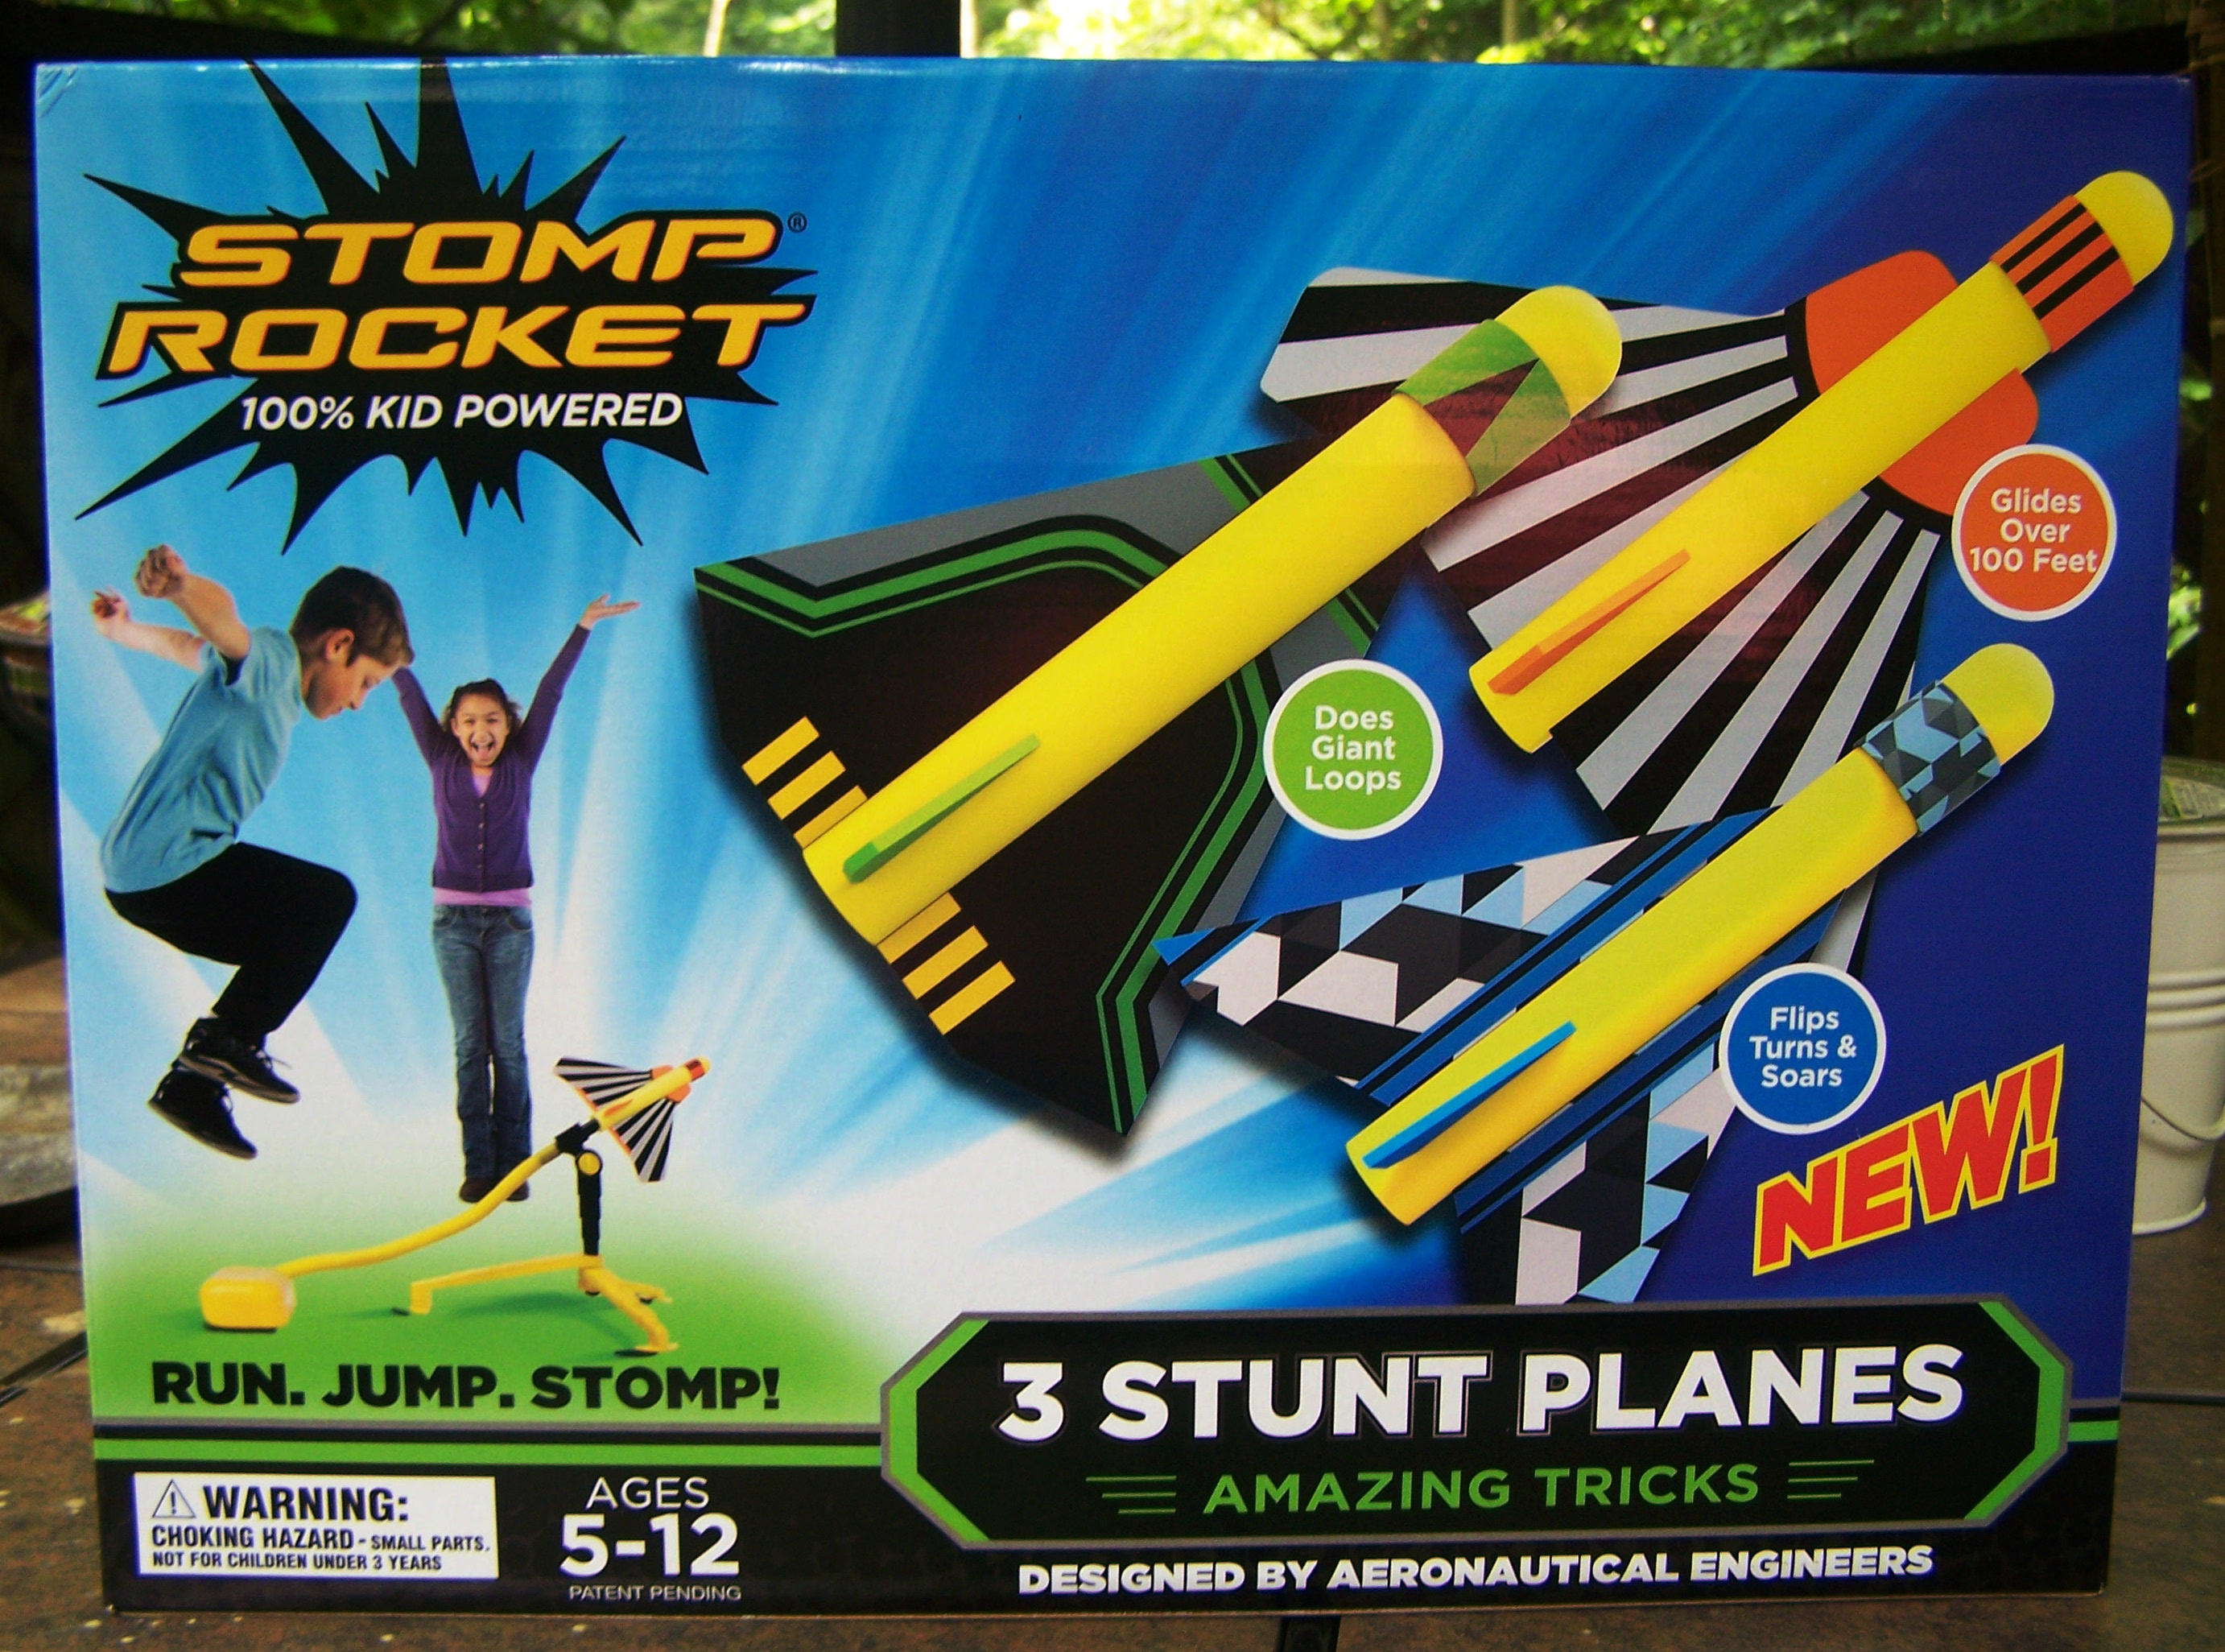 stomp rocket toy toys kids holiday gift guide fun family presents science stem nsa launch fun outdoor experiement pr friendly p.p. list ideas gifts christmas